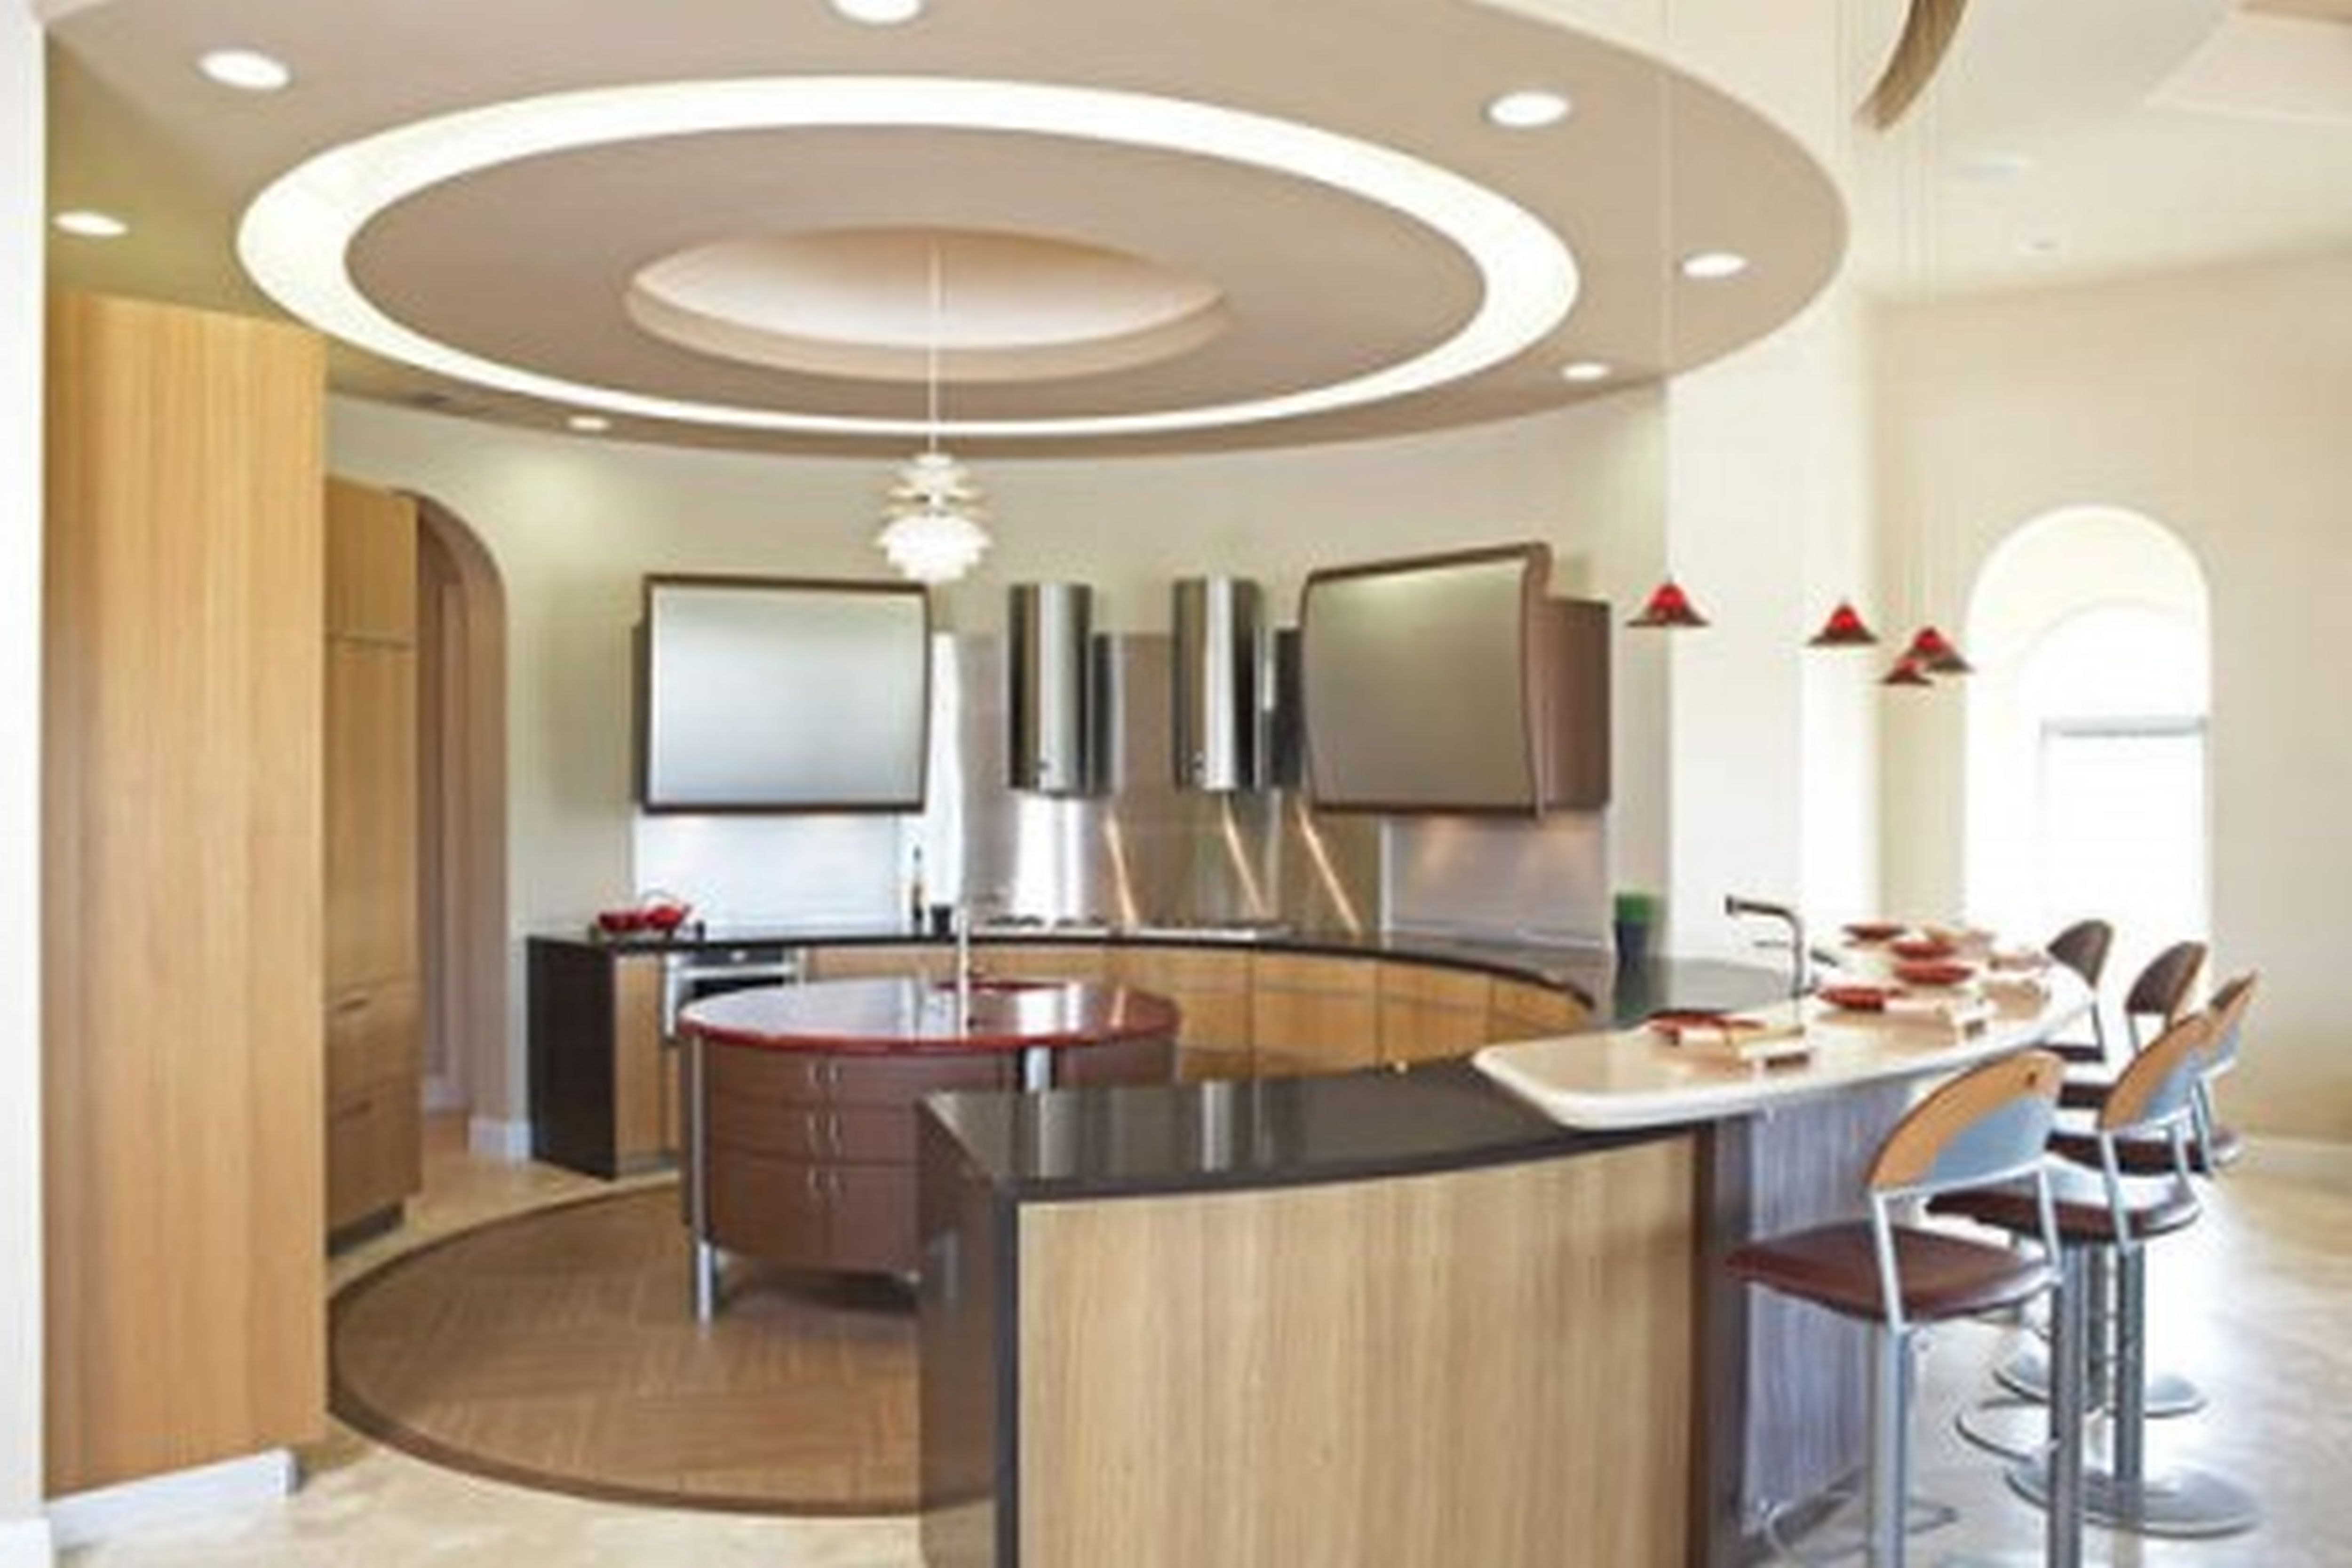 Remarkable Cheerful Pop Ceiling Design For Kitchen Ideas Small Kitchens Download Free Architecture Designs Viewormadebymaigaardcom